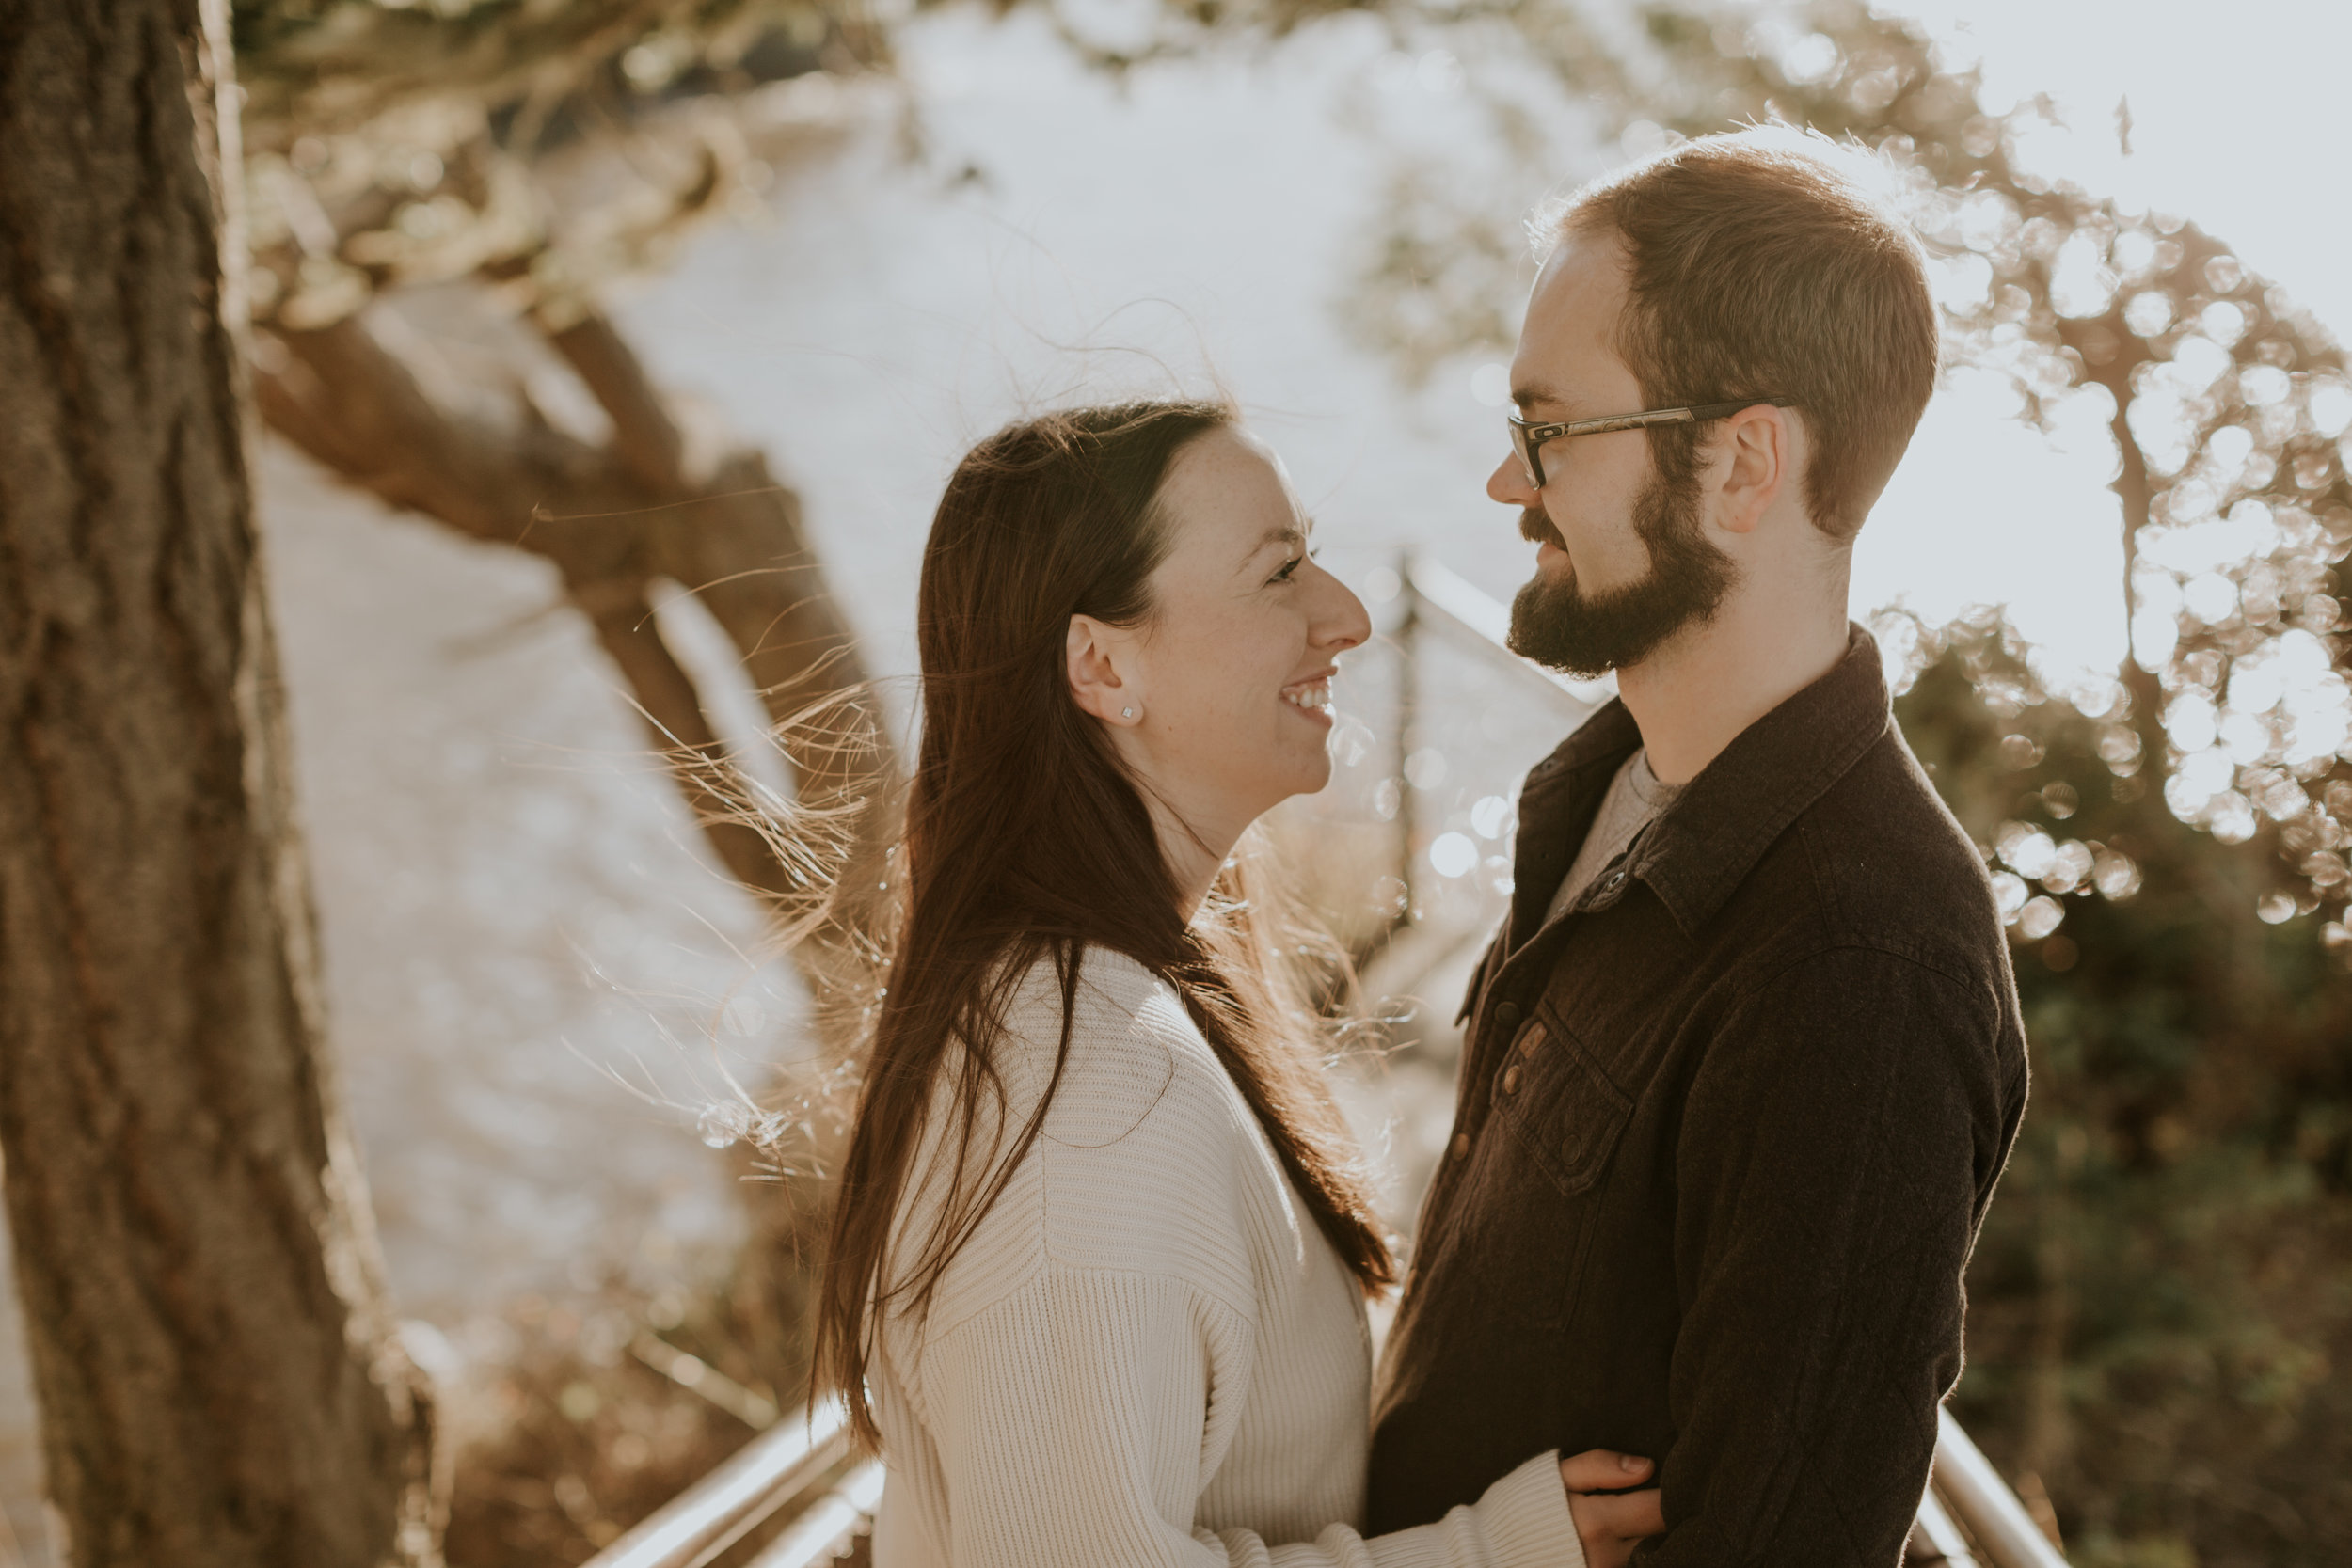 PNW-Olympic National Park-Salt Creek-engagement-Portrait-Port-Angeles-Washington-elopement-photographer-kayla-dawn-photography-kayladawnphoto-wedding-anniversary-photoshoot-olympic-peninsula-121.jpg